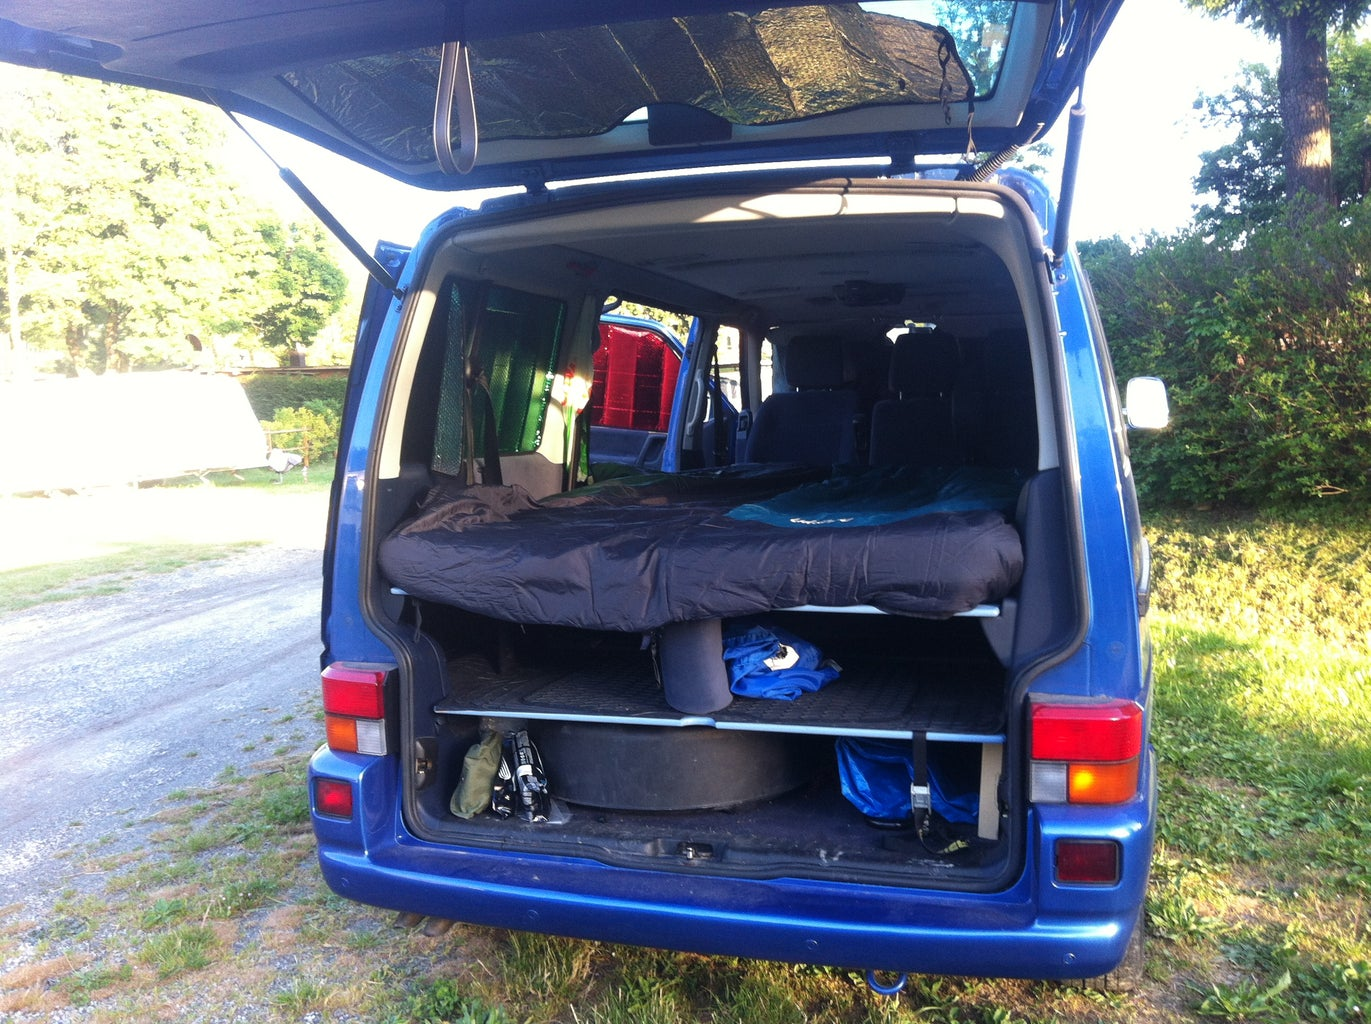 The Campervan in Use